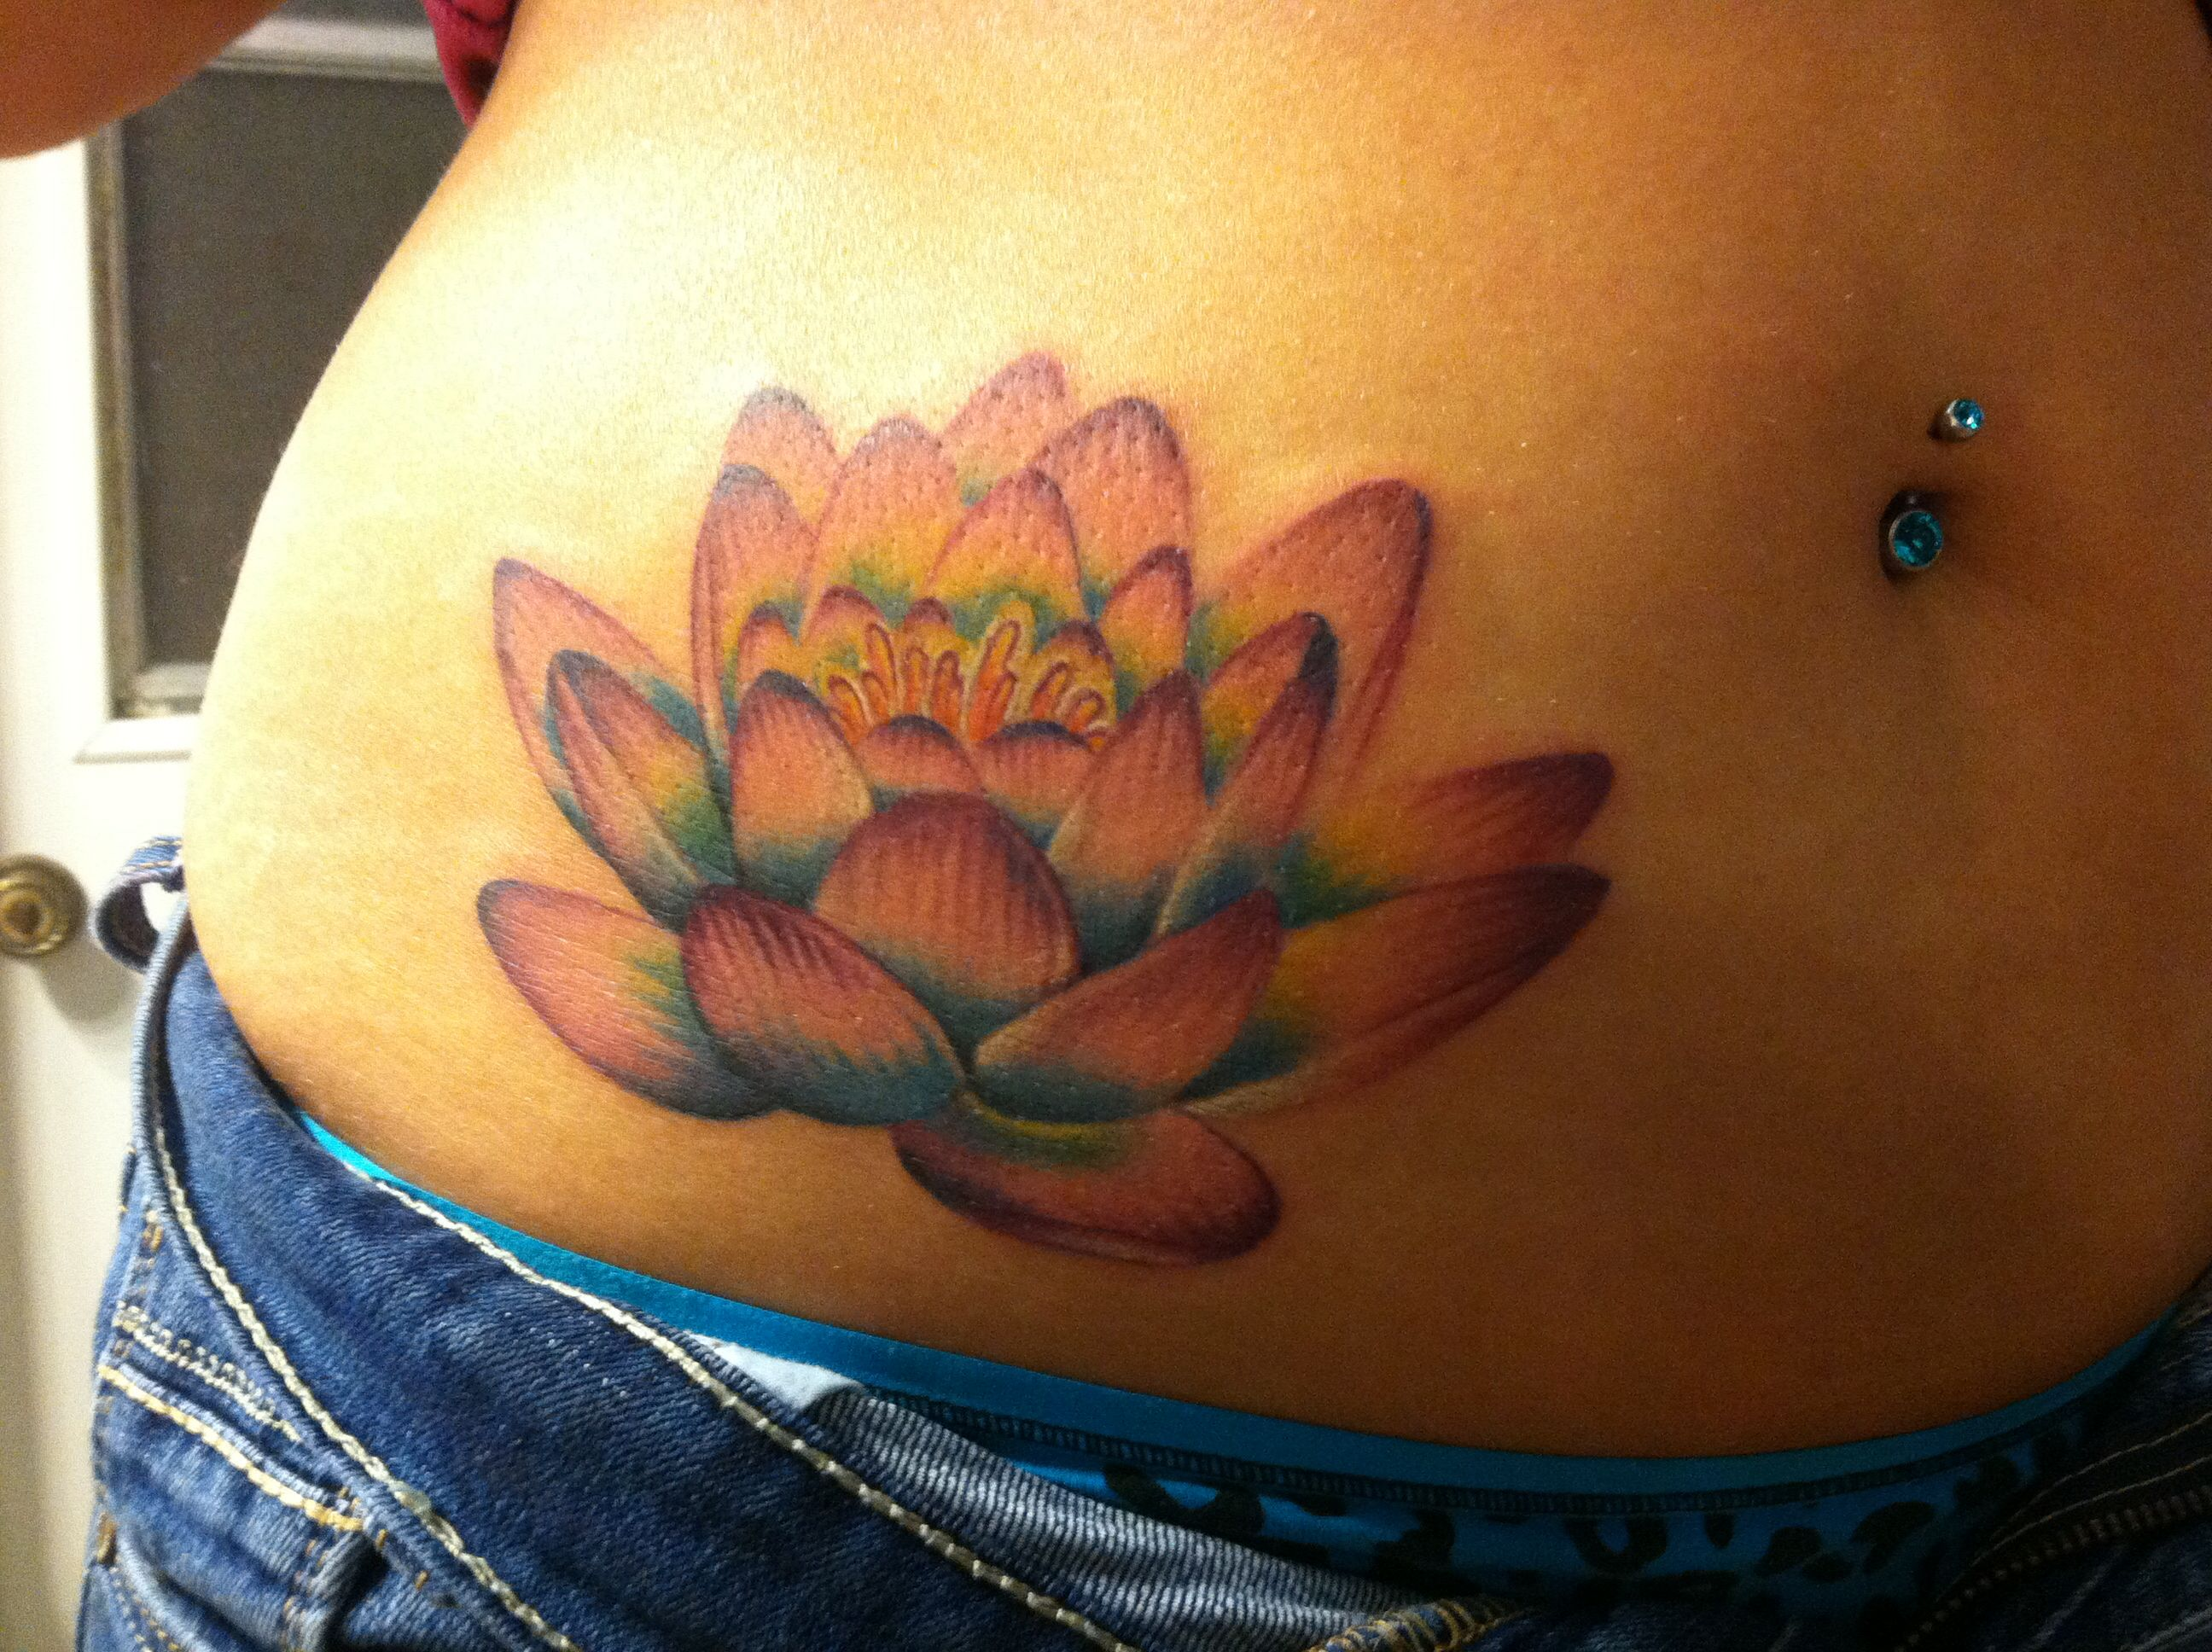 New Lotus Tattoo Lotus For Strength And Blue And Pink For Infertility Struggles Endometriosis Tattoo Lotus Tattoo Cover Up Tattoos